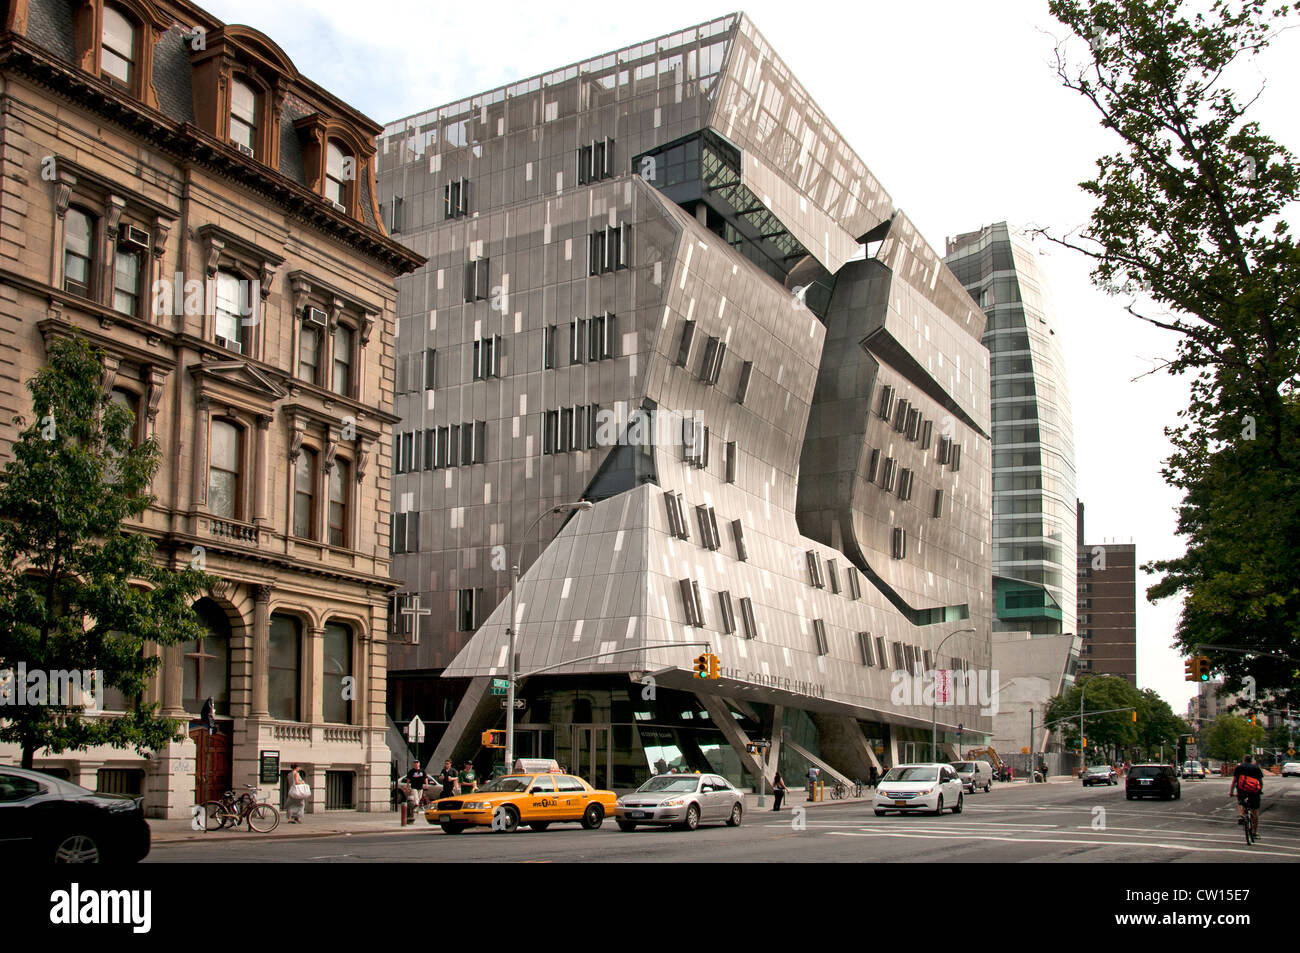 Cooper Union New Academic Building Designed by Thom Mayne of Morphosis Architecture East Village Manhattan New York - Stock Image